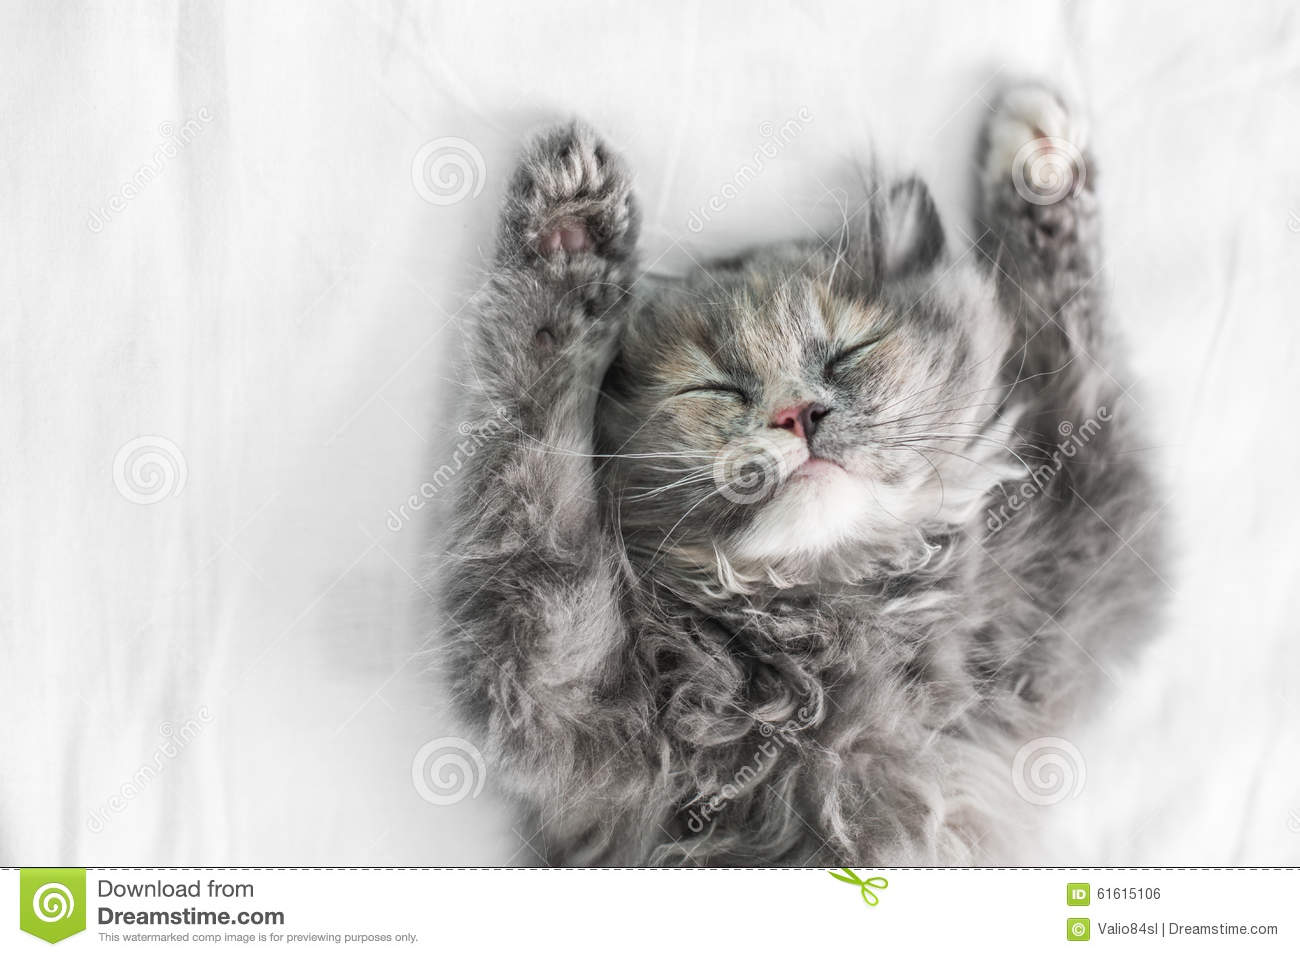 Cute cat sleeping on the bed